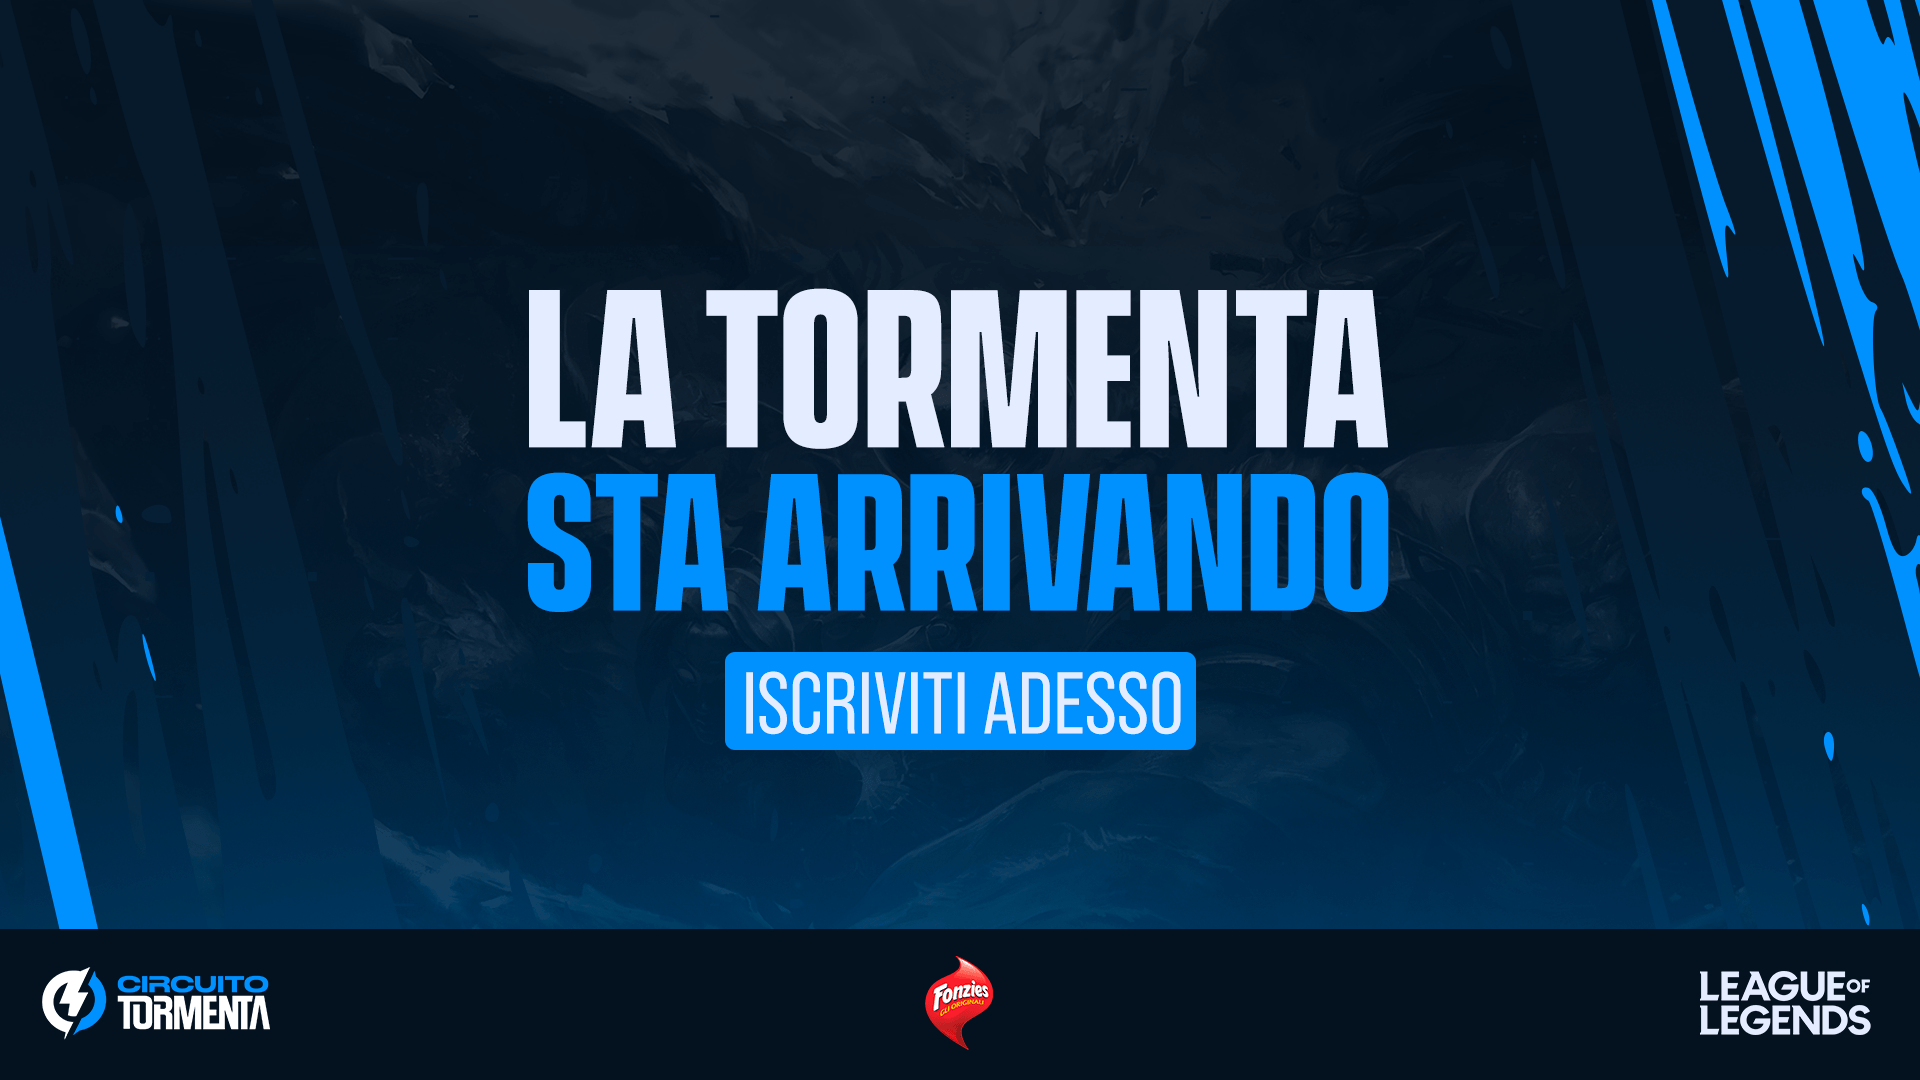 ARRIVA IN ITALIA IL CIRCUITO TORMENTA, LA COMPETIZIONE PENSATA PER TUTTI I FAN DI LEAGUE OF LEGENDS